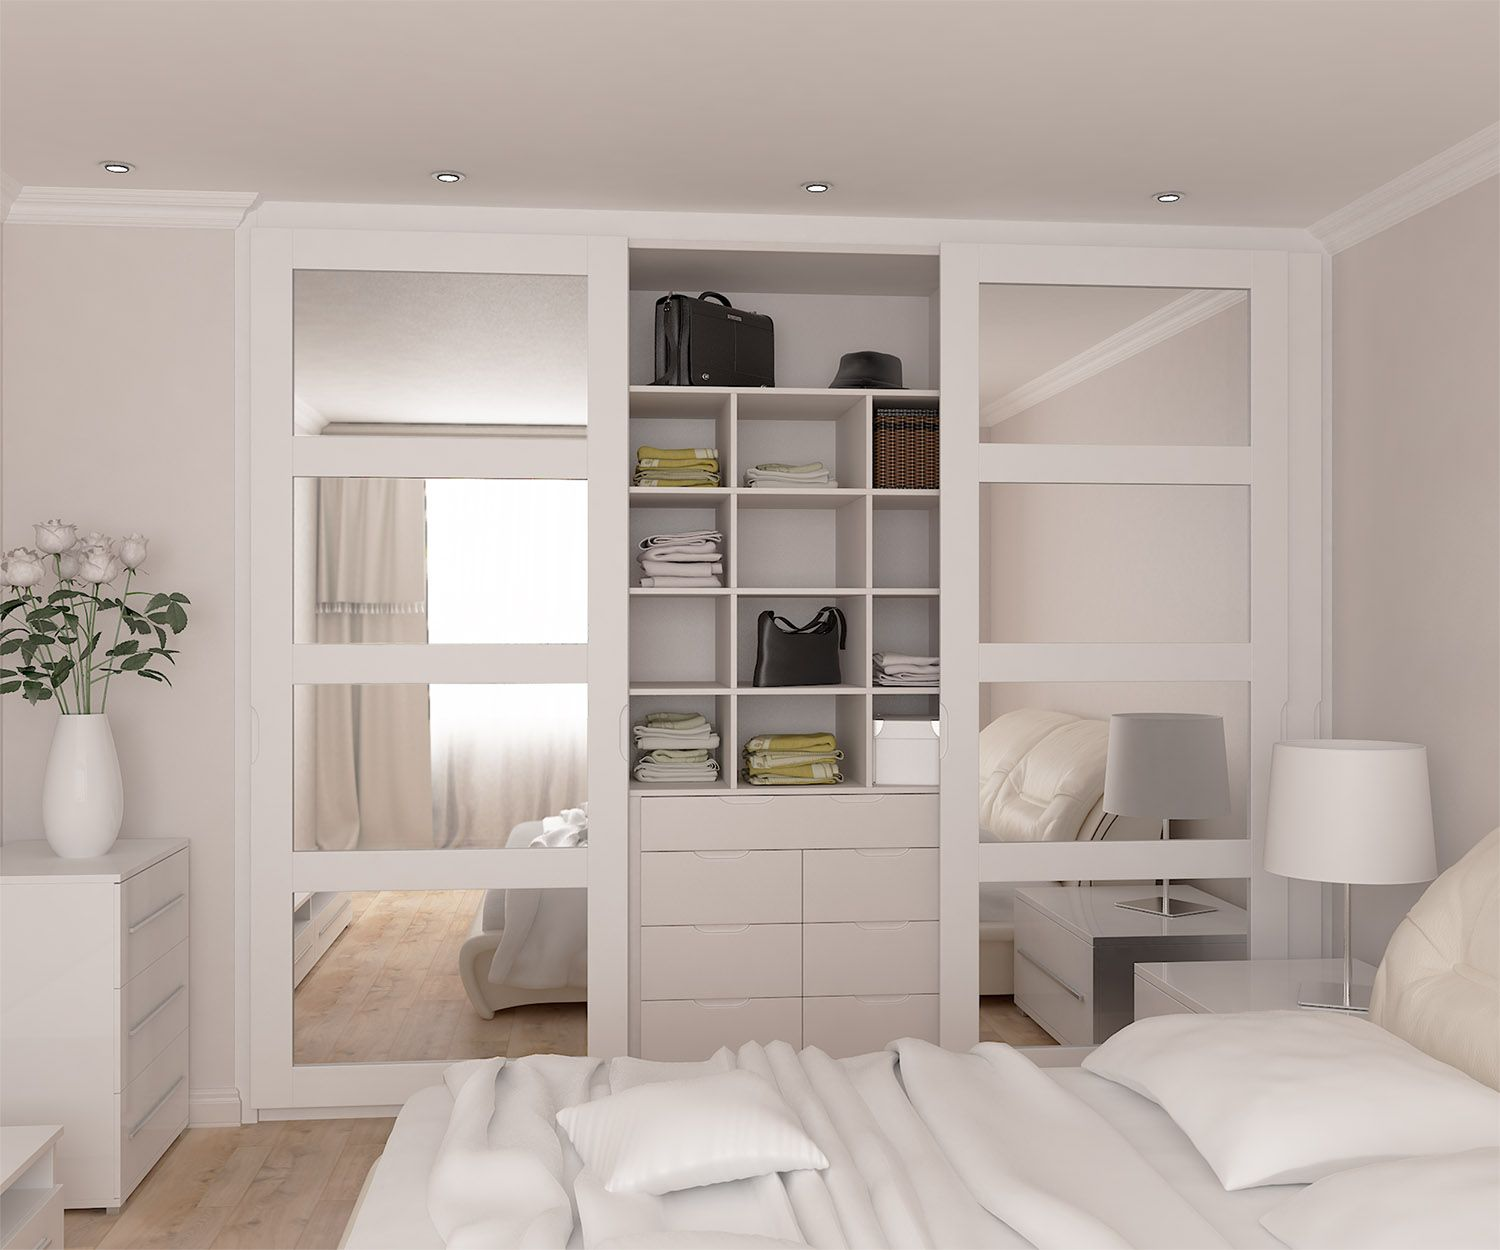 Bedroom Closets And Wardrobes: Best 25+ Fitted Sliding Wardrobes Ideas On Pinterest